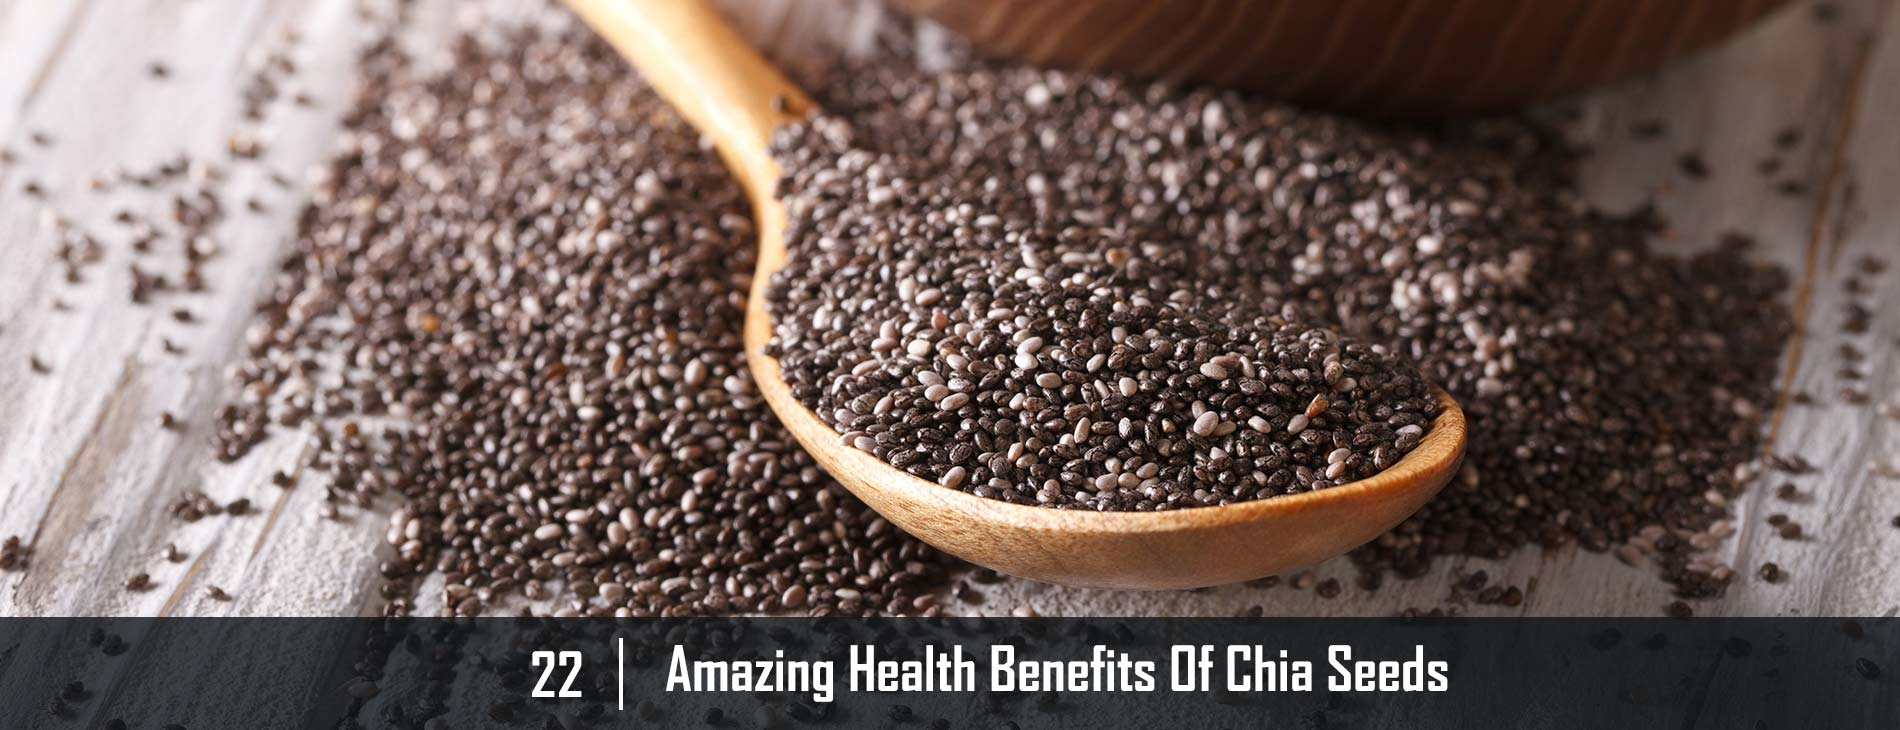 22-Amazing-Health-Benefits-Of-Chia-Seeds